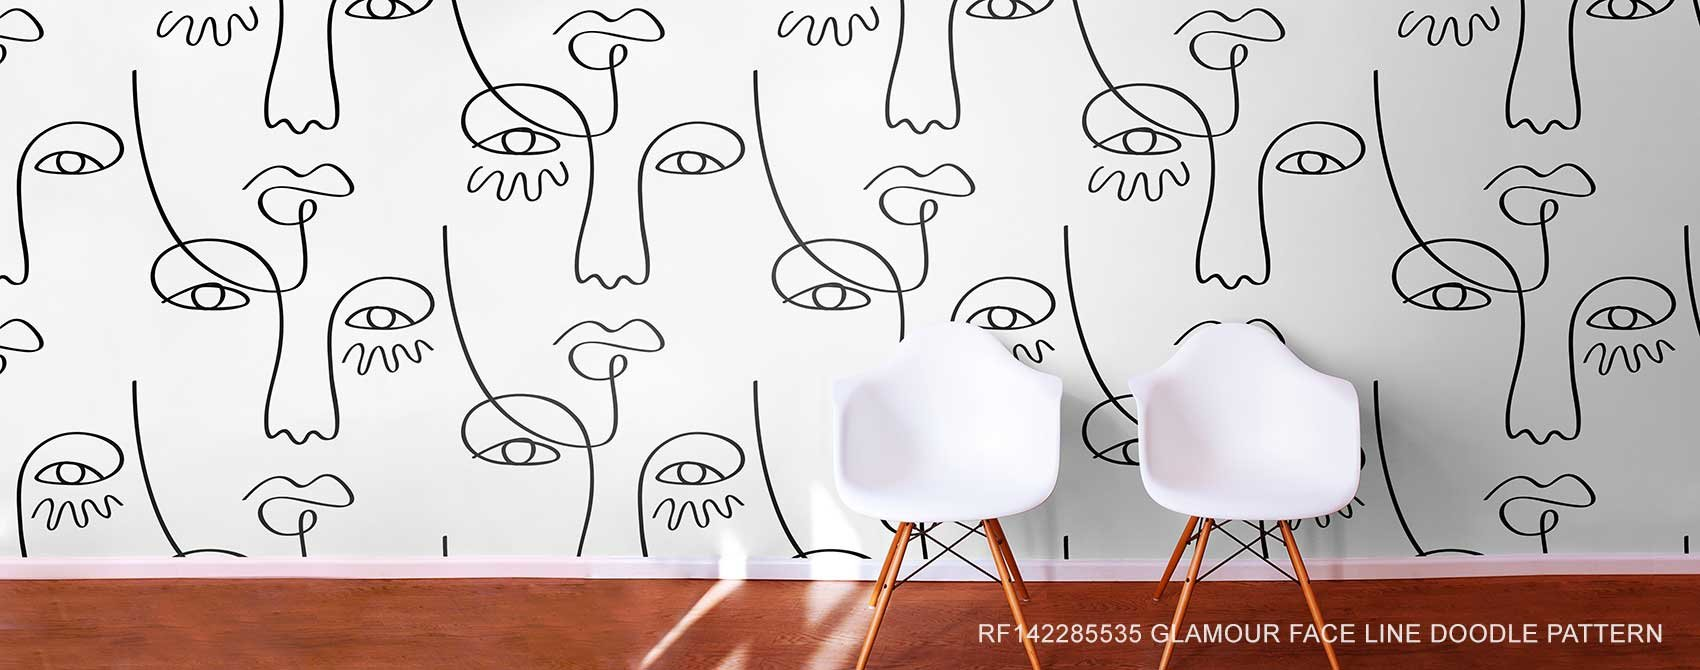 Glamour Face Line Doodle Pattern Wallpaper